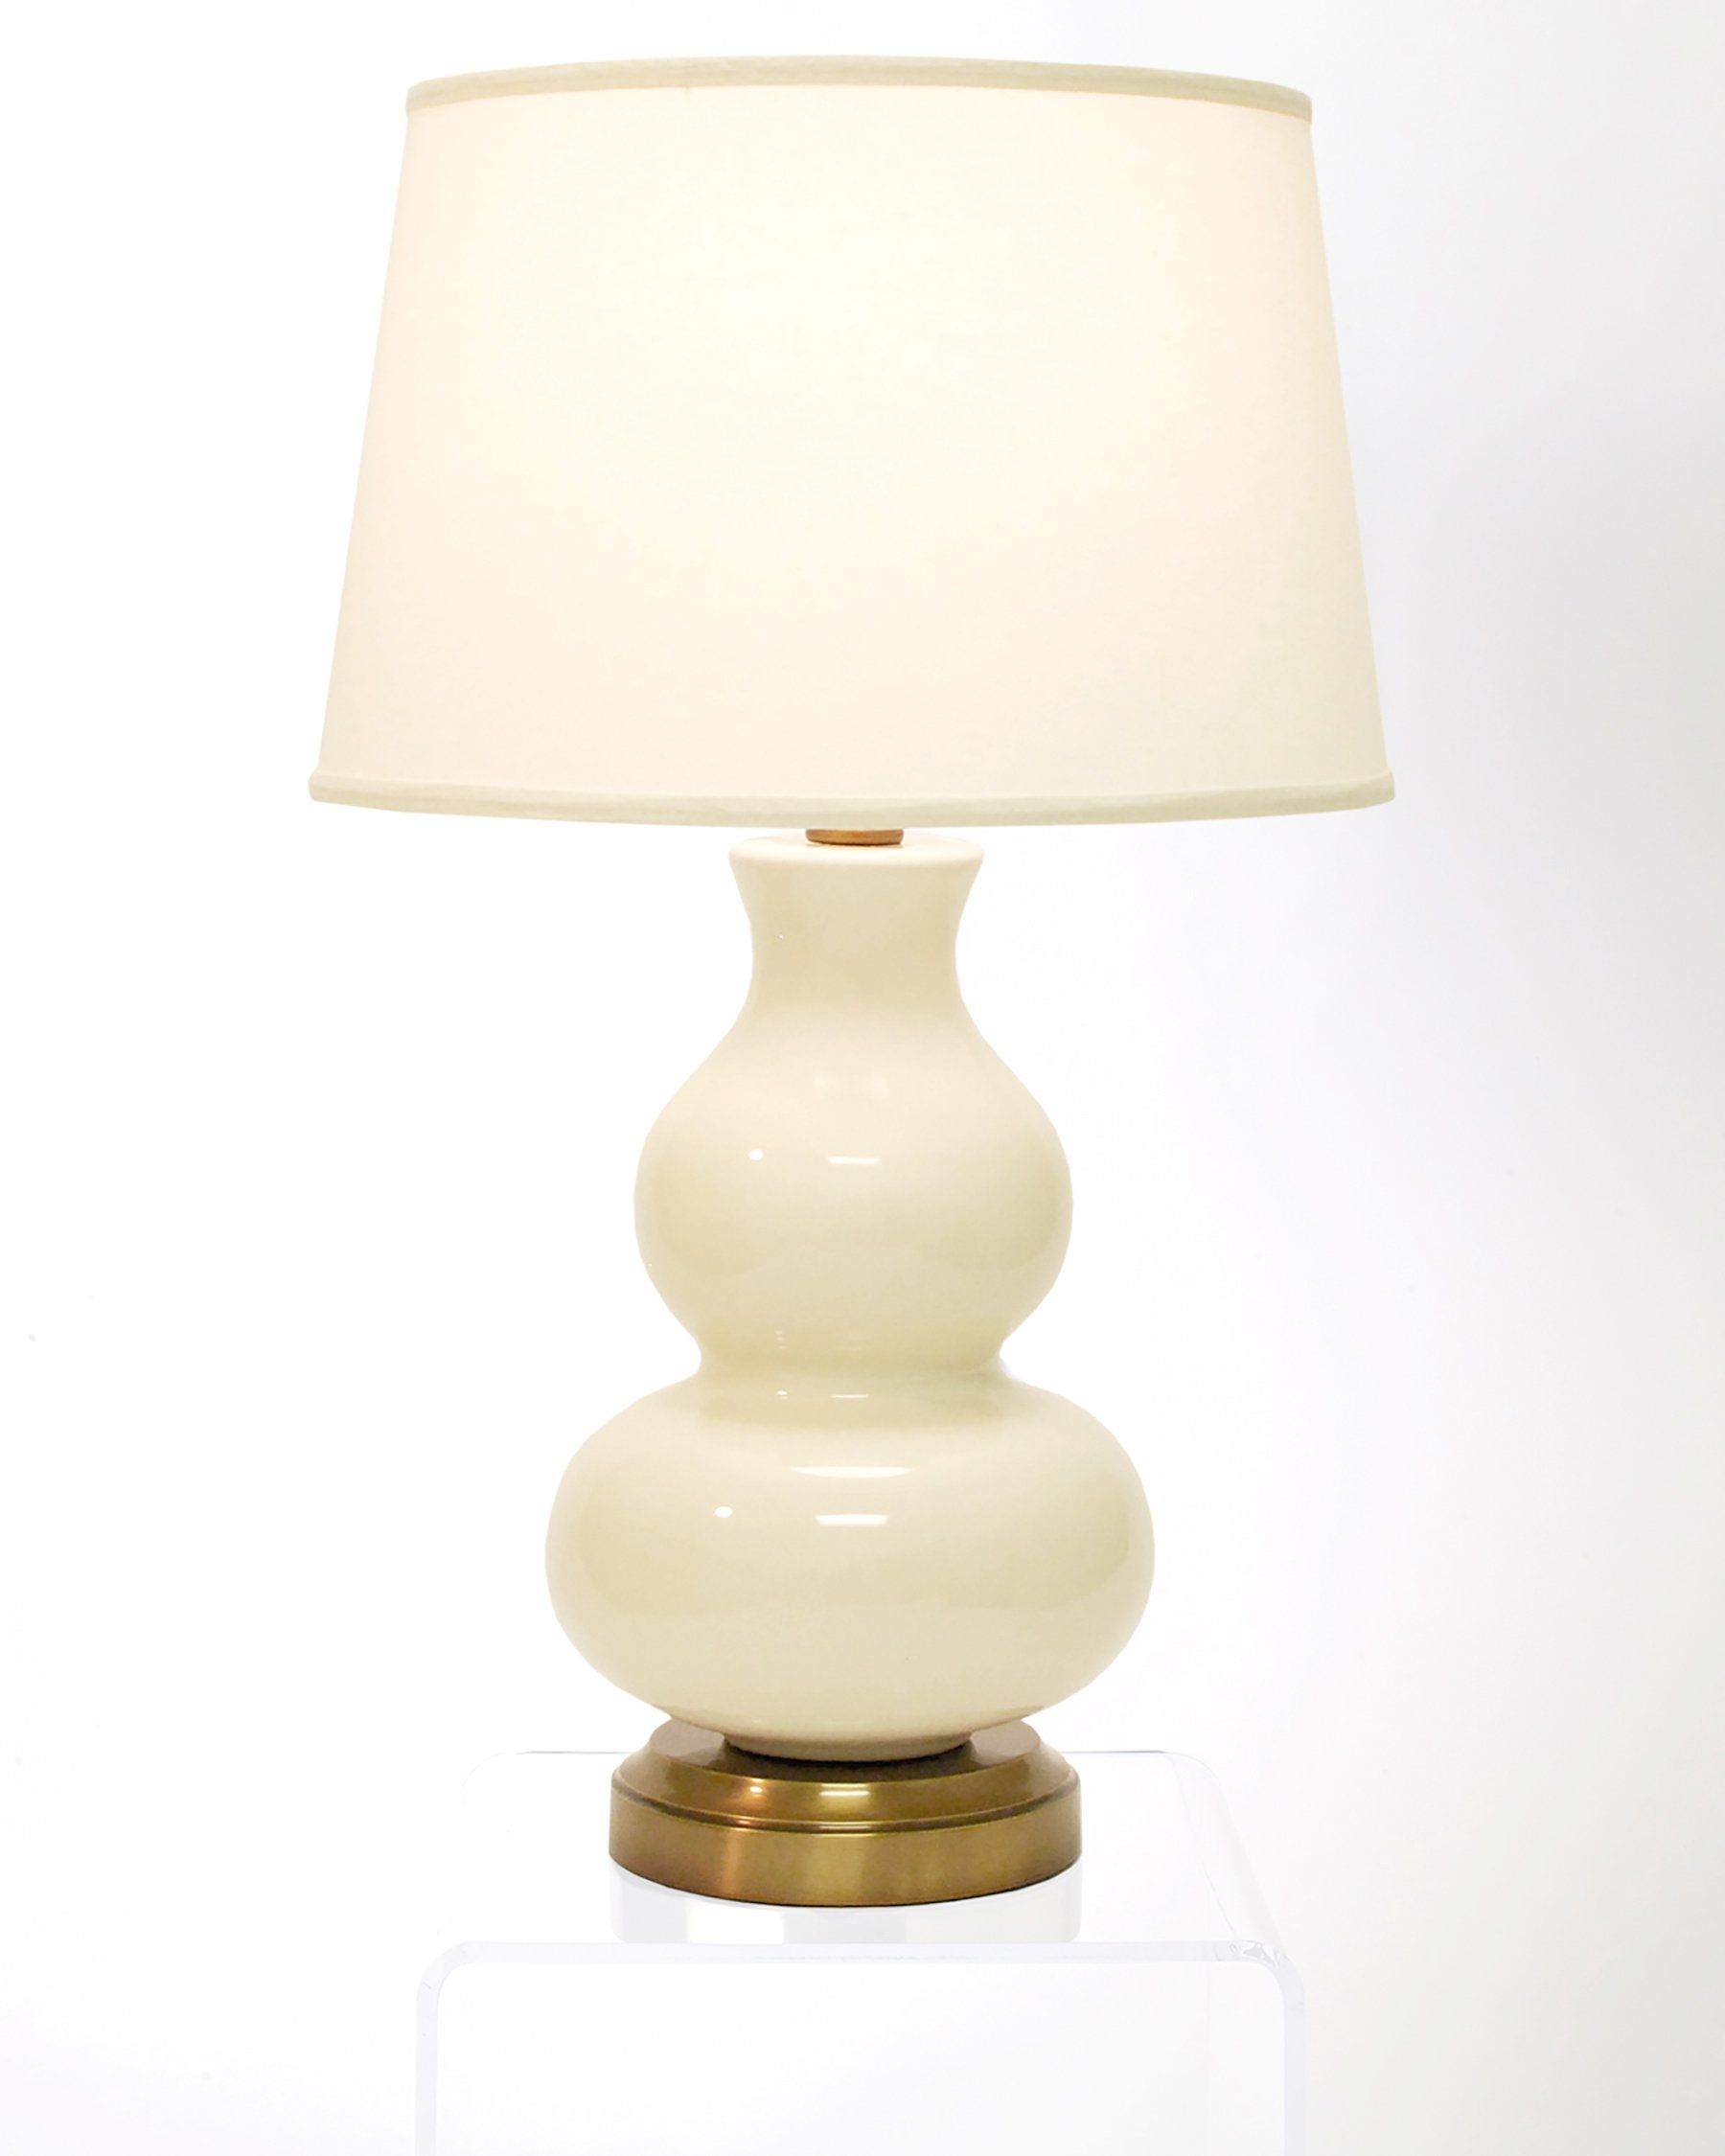 Marilyn Ivory On Brass Cordless Lamp Made In The Usa pertaining to dimensions 1800 X 2250